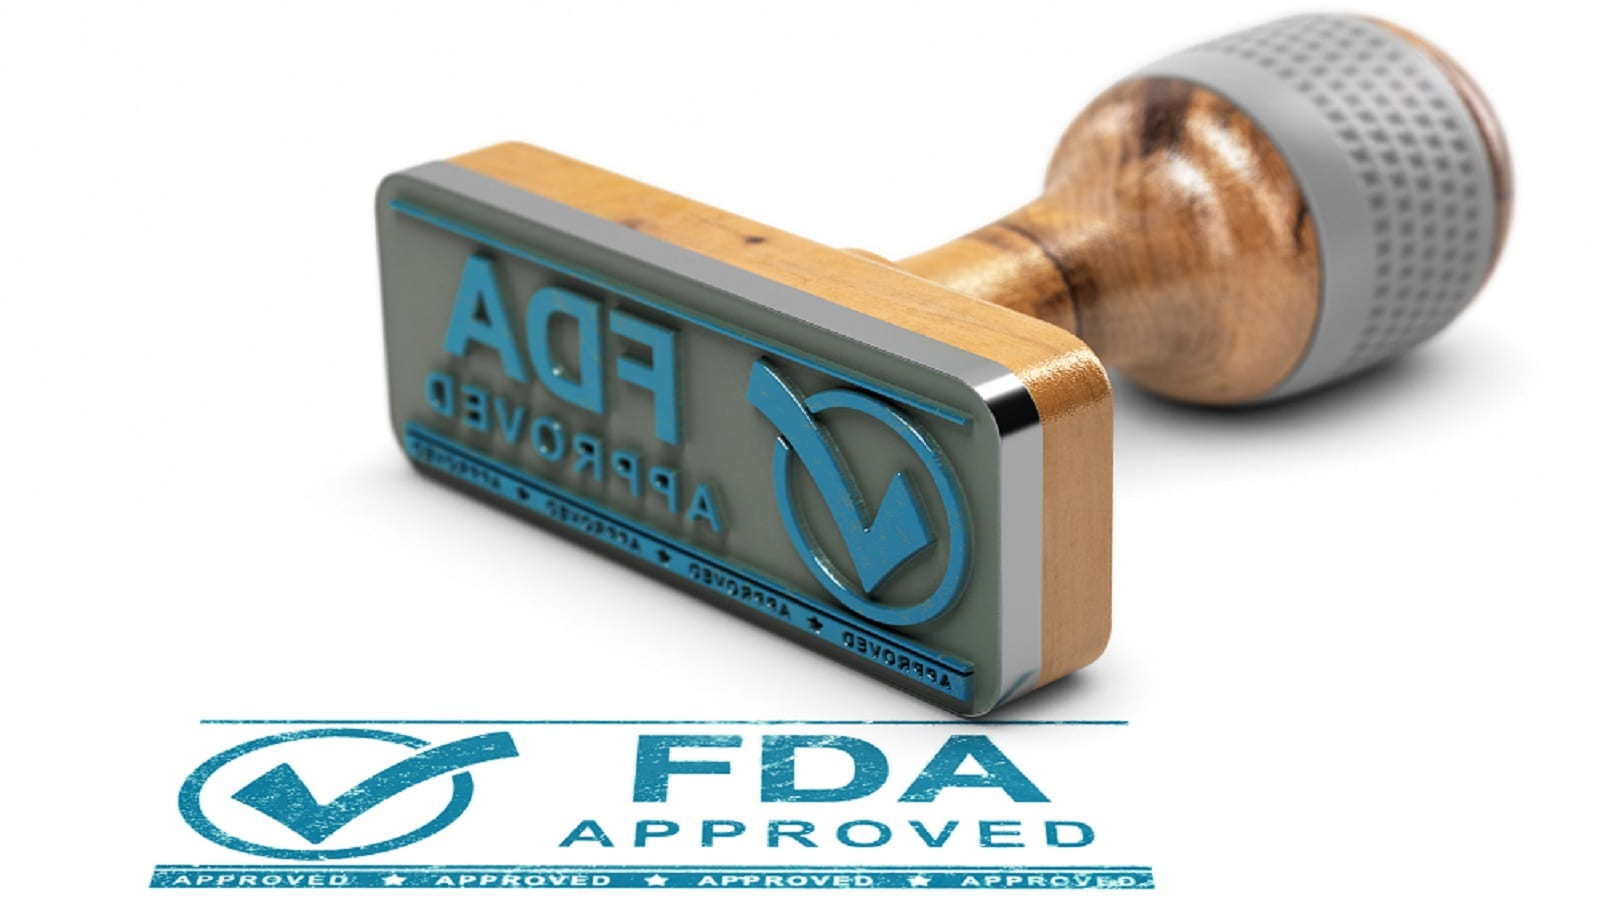 FDA Stamp of Approval Stock Photo